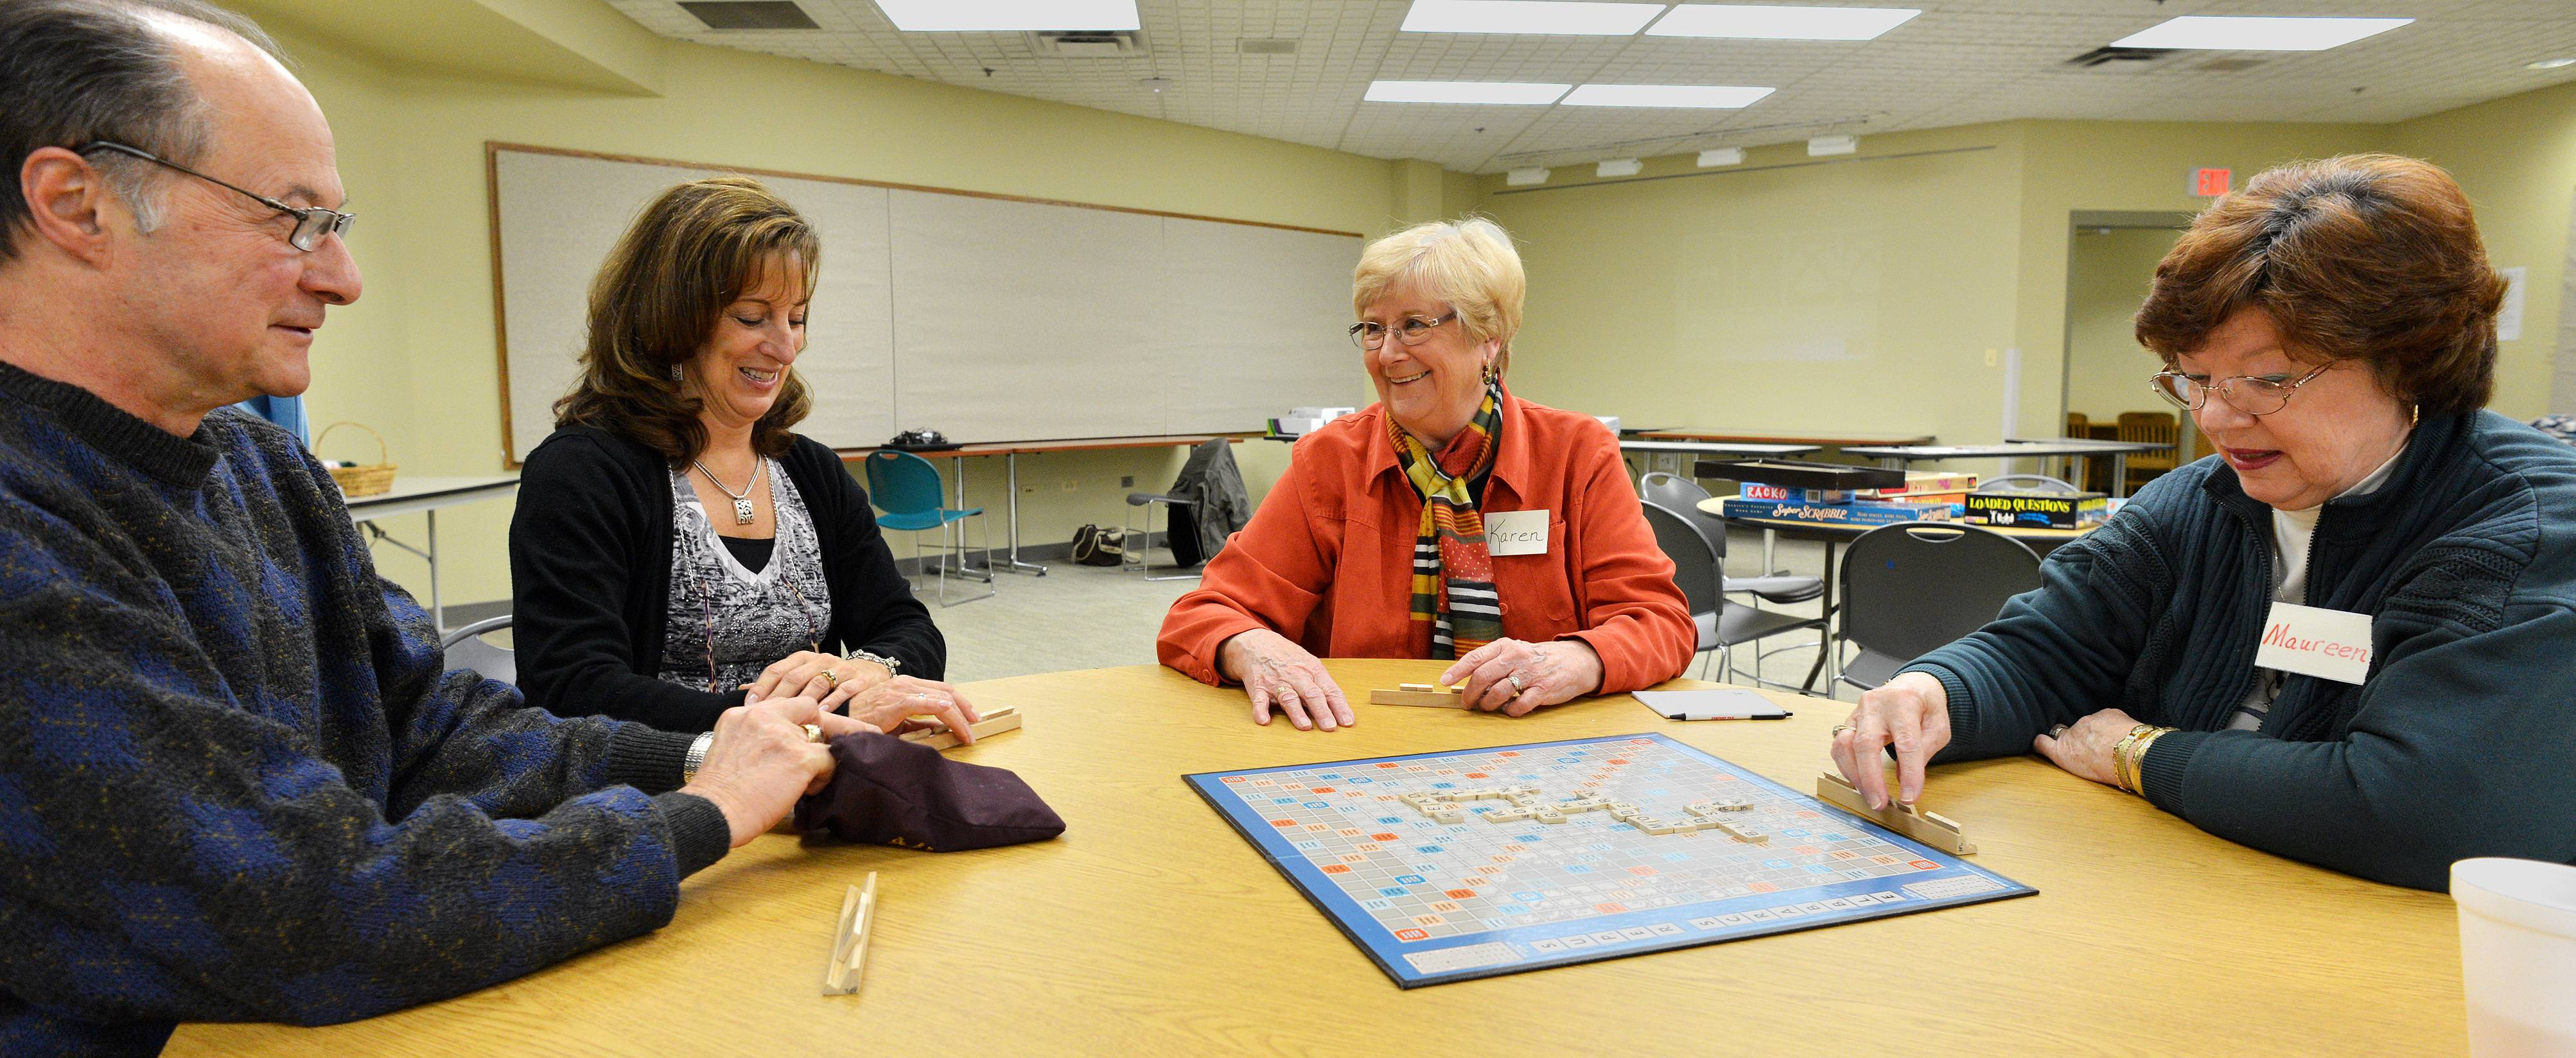 Super Scrabble is one of the more popular board games enjoyed by the senior citizens at the Bloomingdale Public Library's Senior Games. From left are Gene Carsello, Library Reference Assistant Brenda Levin, Karen Paras and Maureen Dolis.